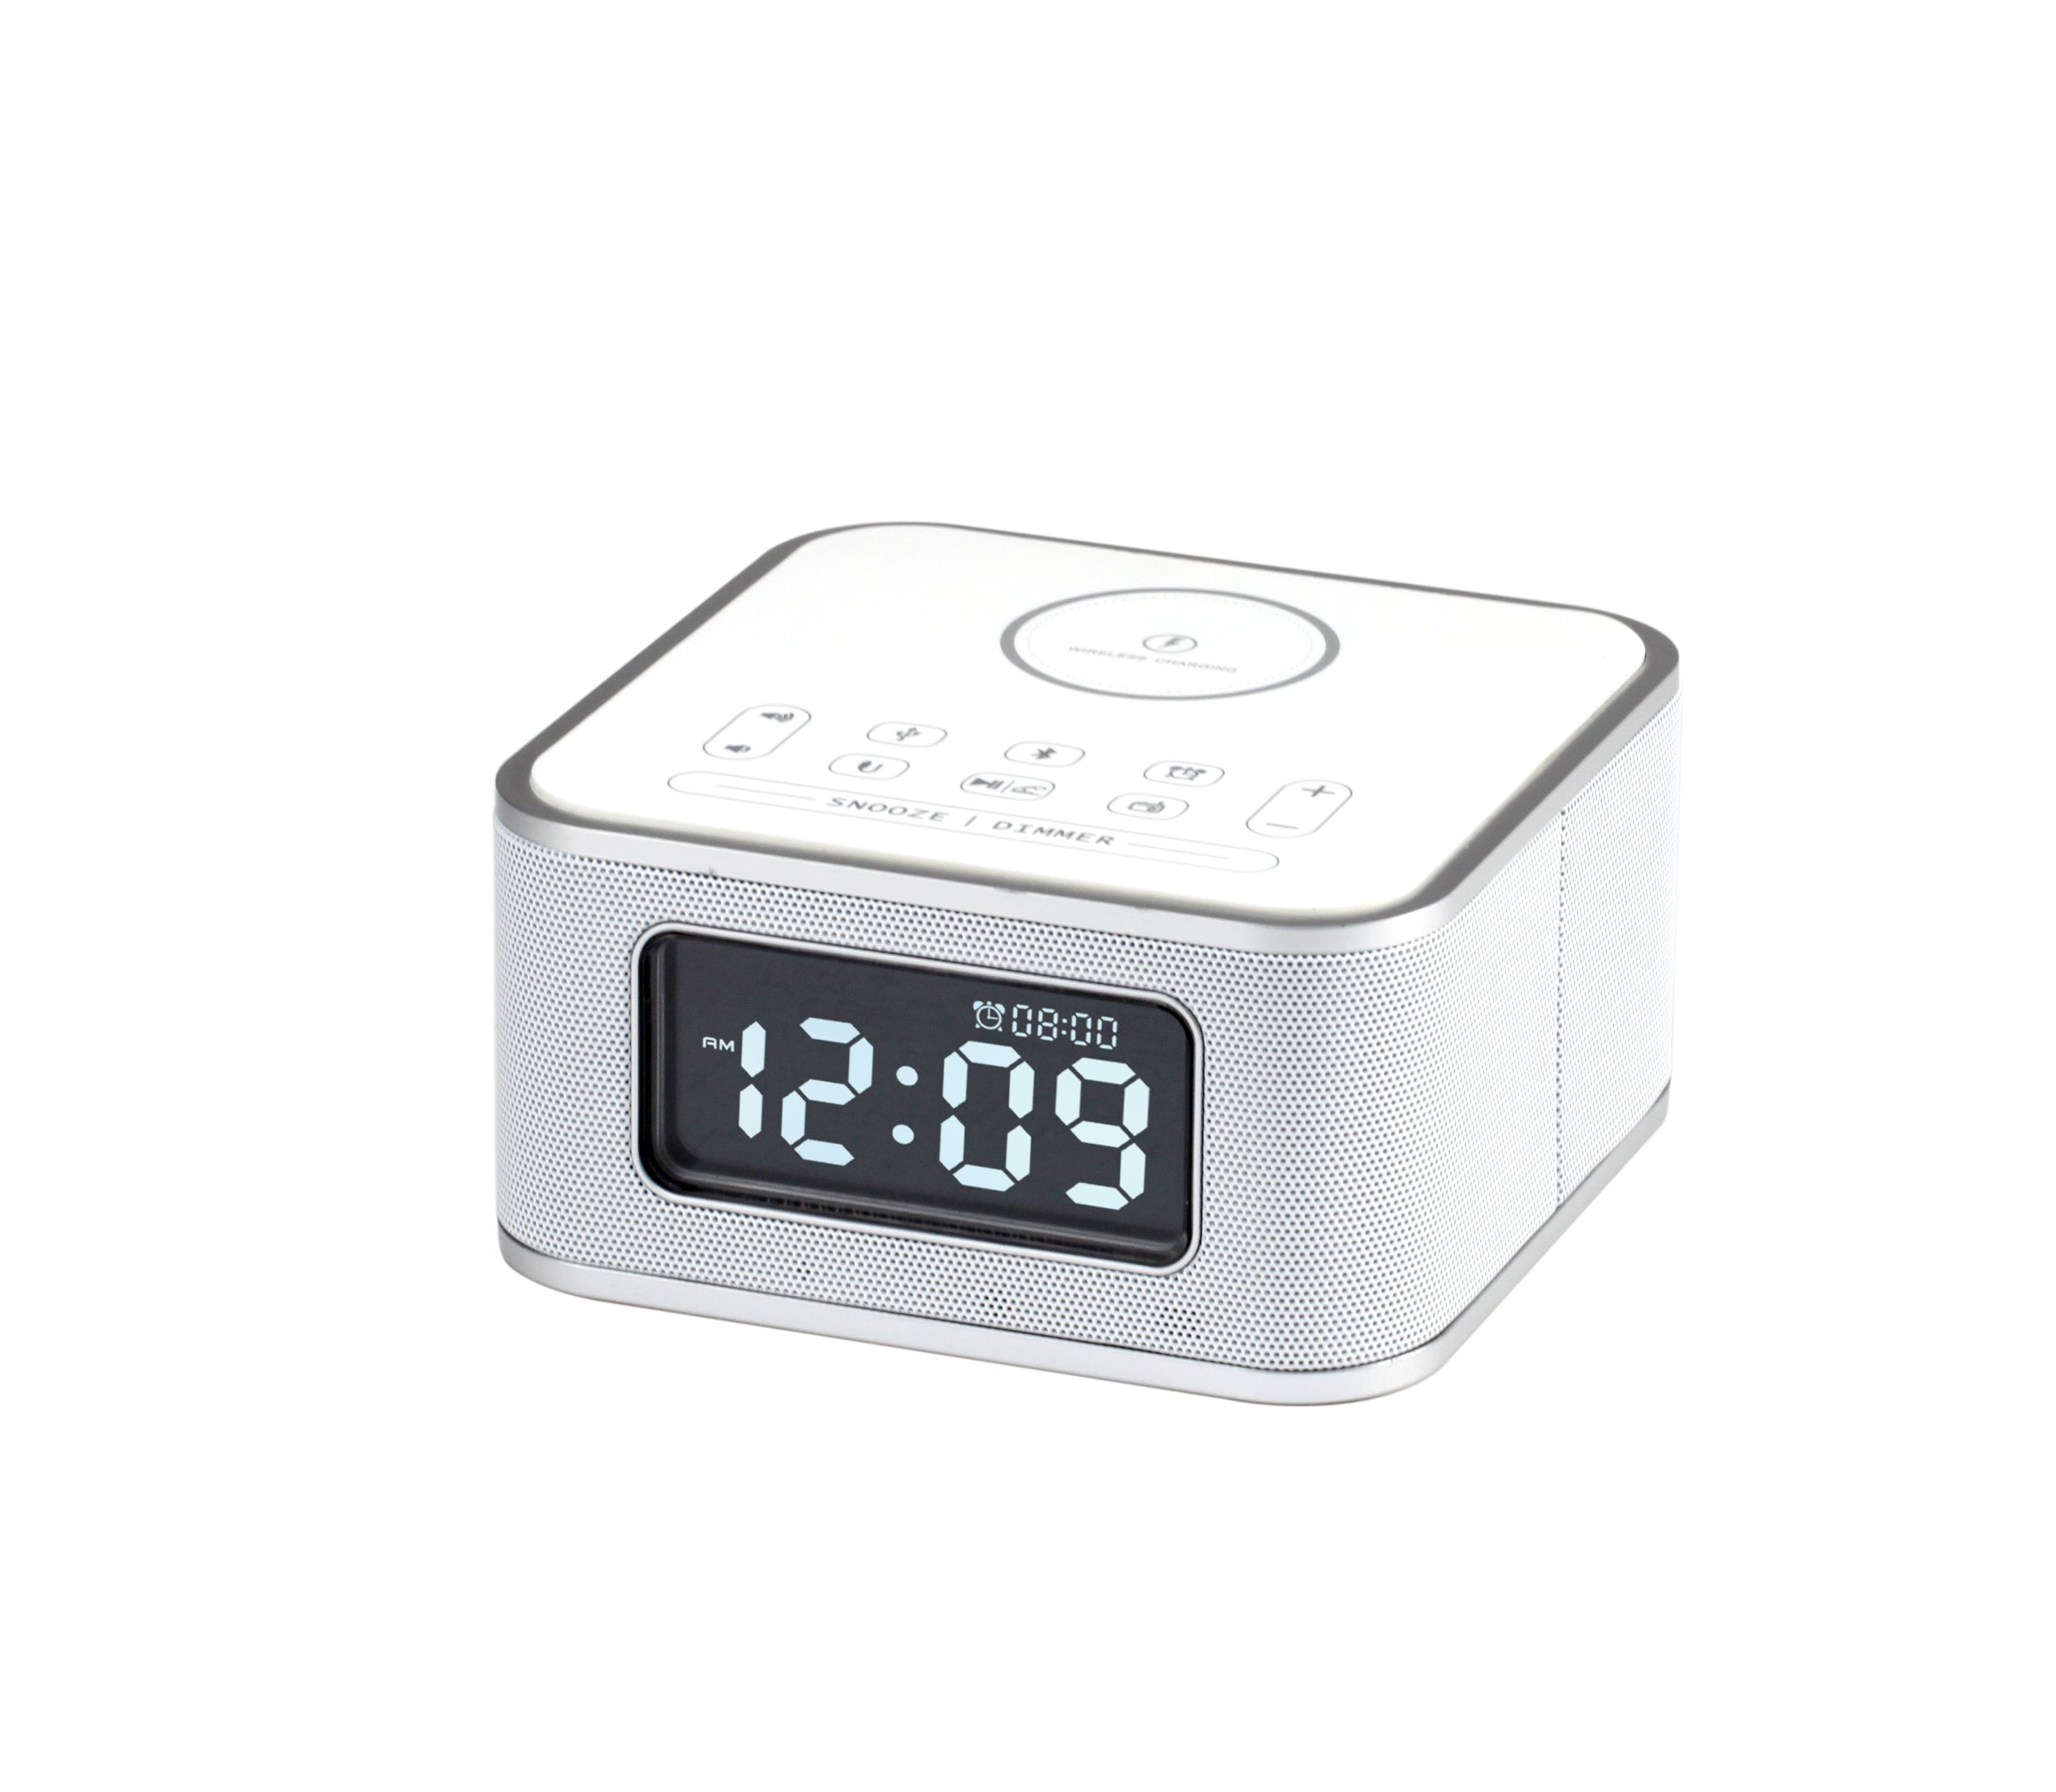 Wireless Charging Alarm Clock Radio For Bedroom Wireless Charger Compatible Iphone X Iphone 8 With Bluetooth Speaker Usb Charging Fm Radio Loud Alarm For He In 2020 Radio Alarm Clock Alarm